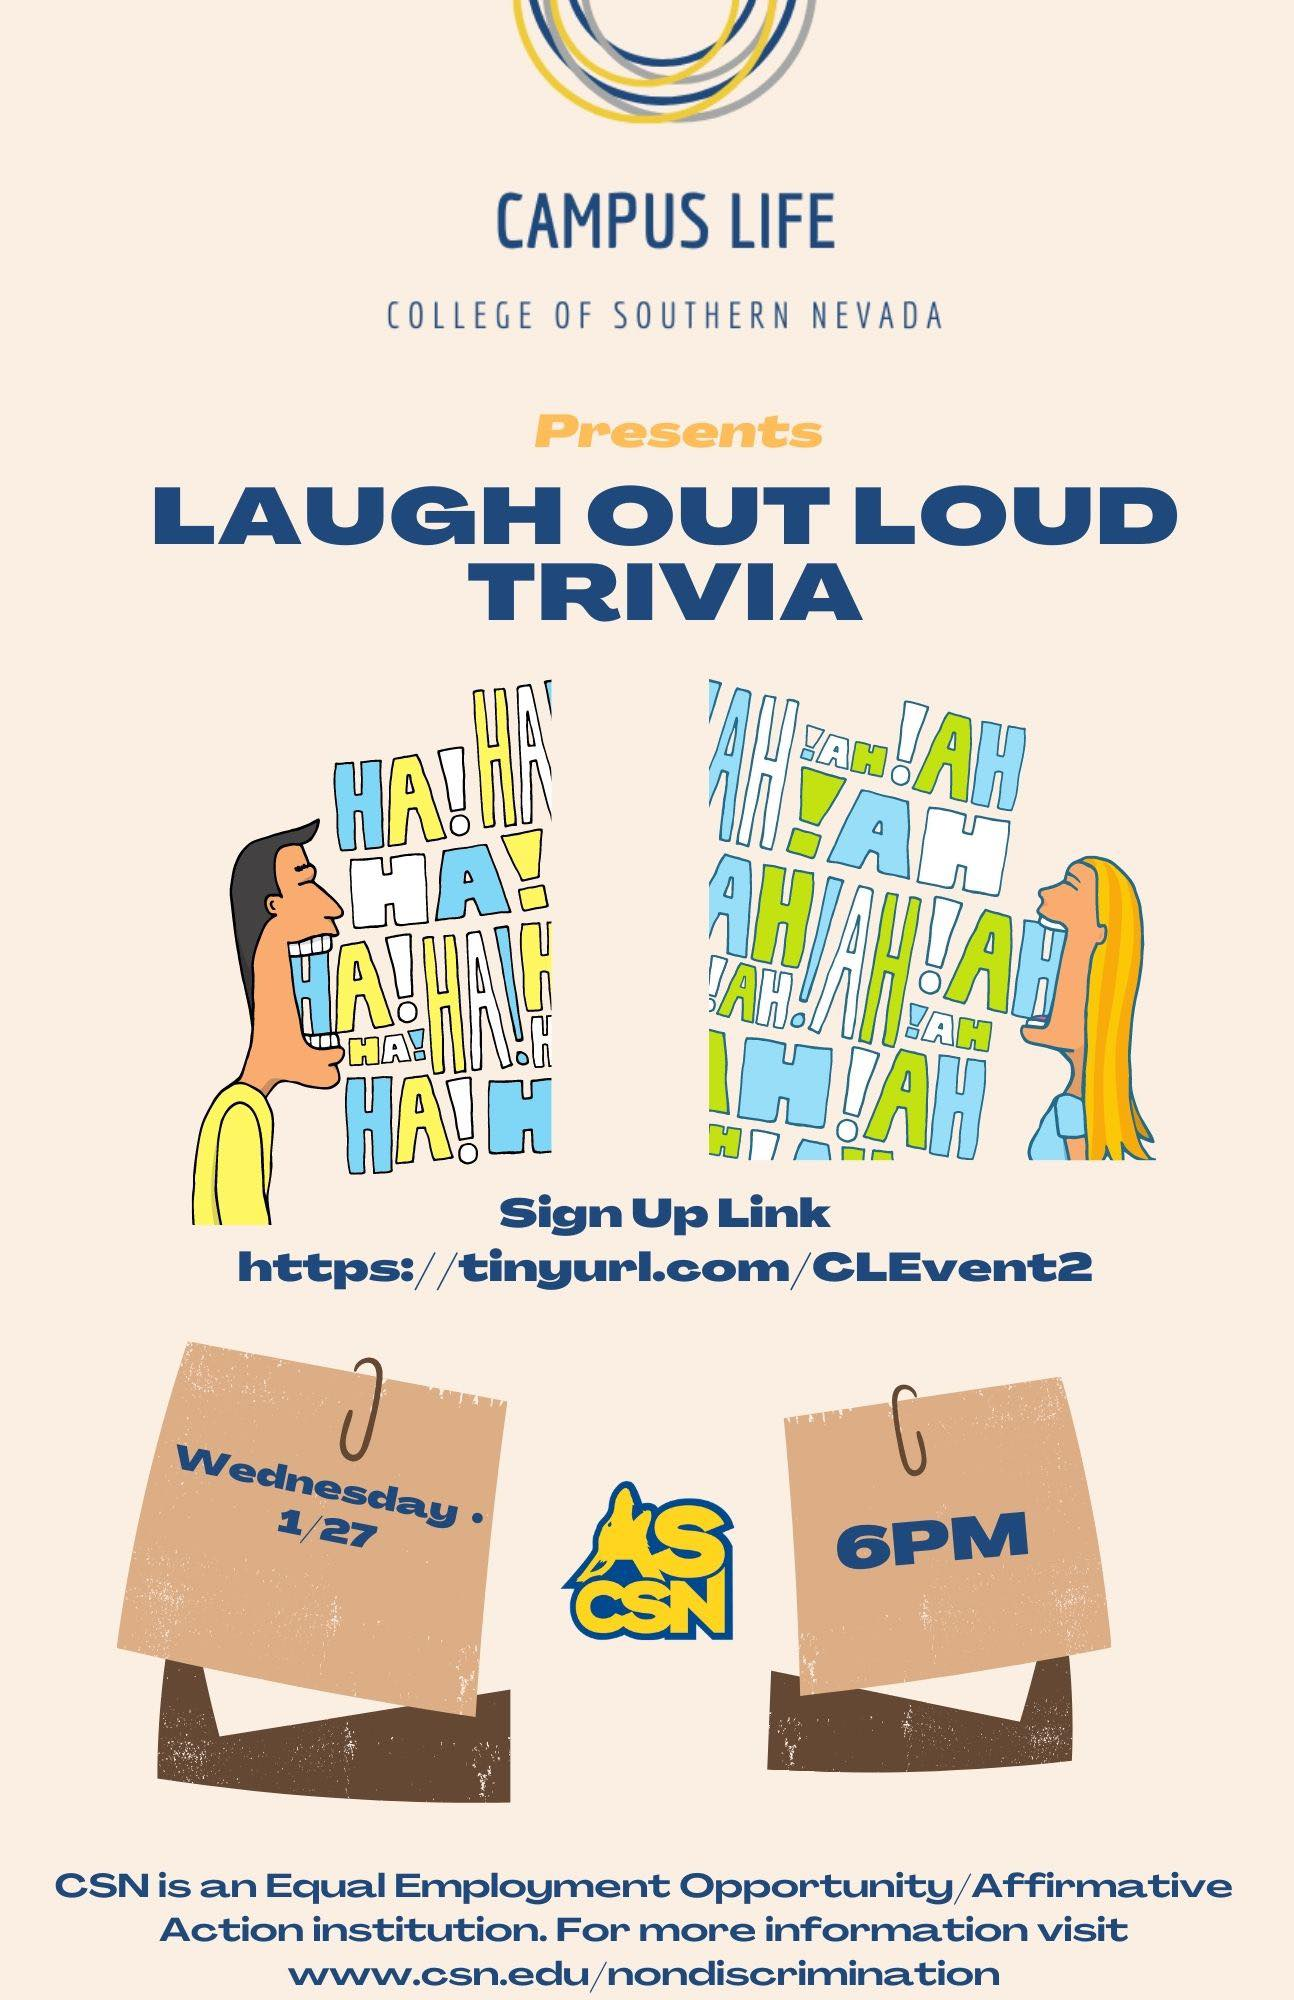 Laugh out loud trivia with two laughing faces